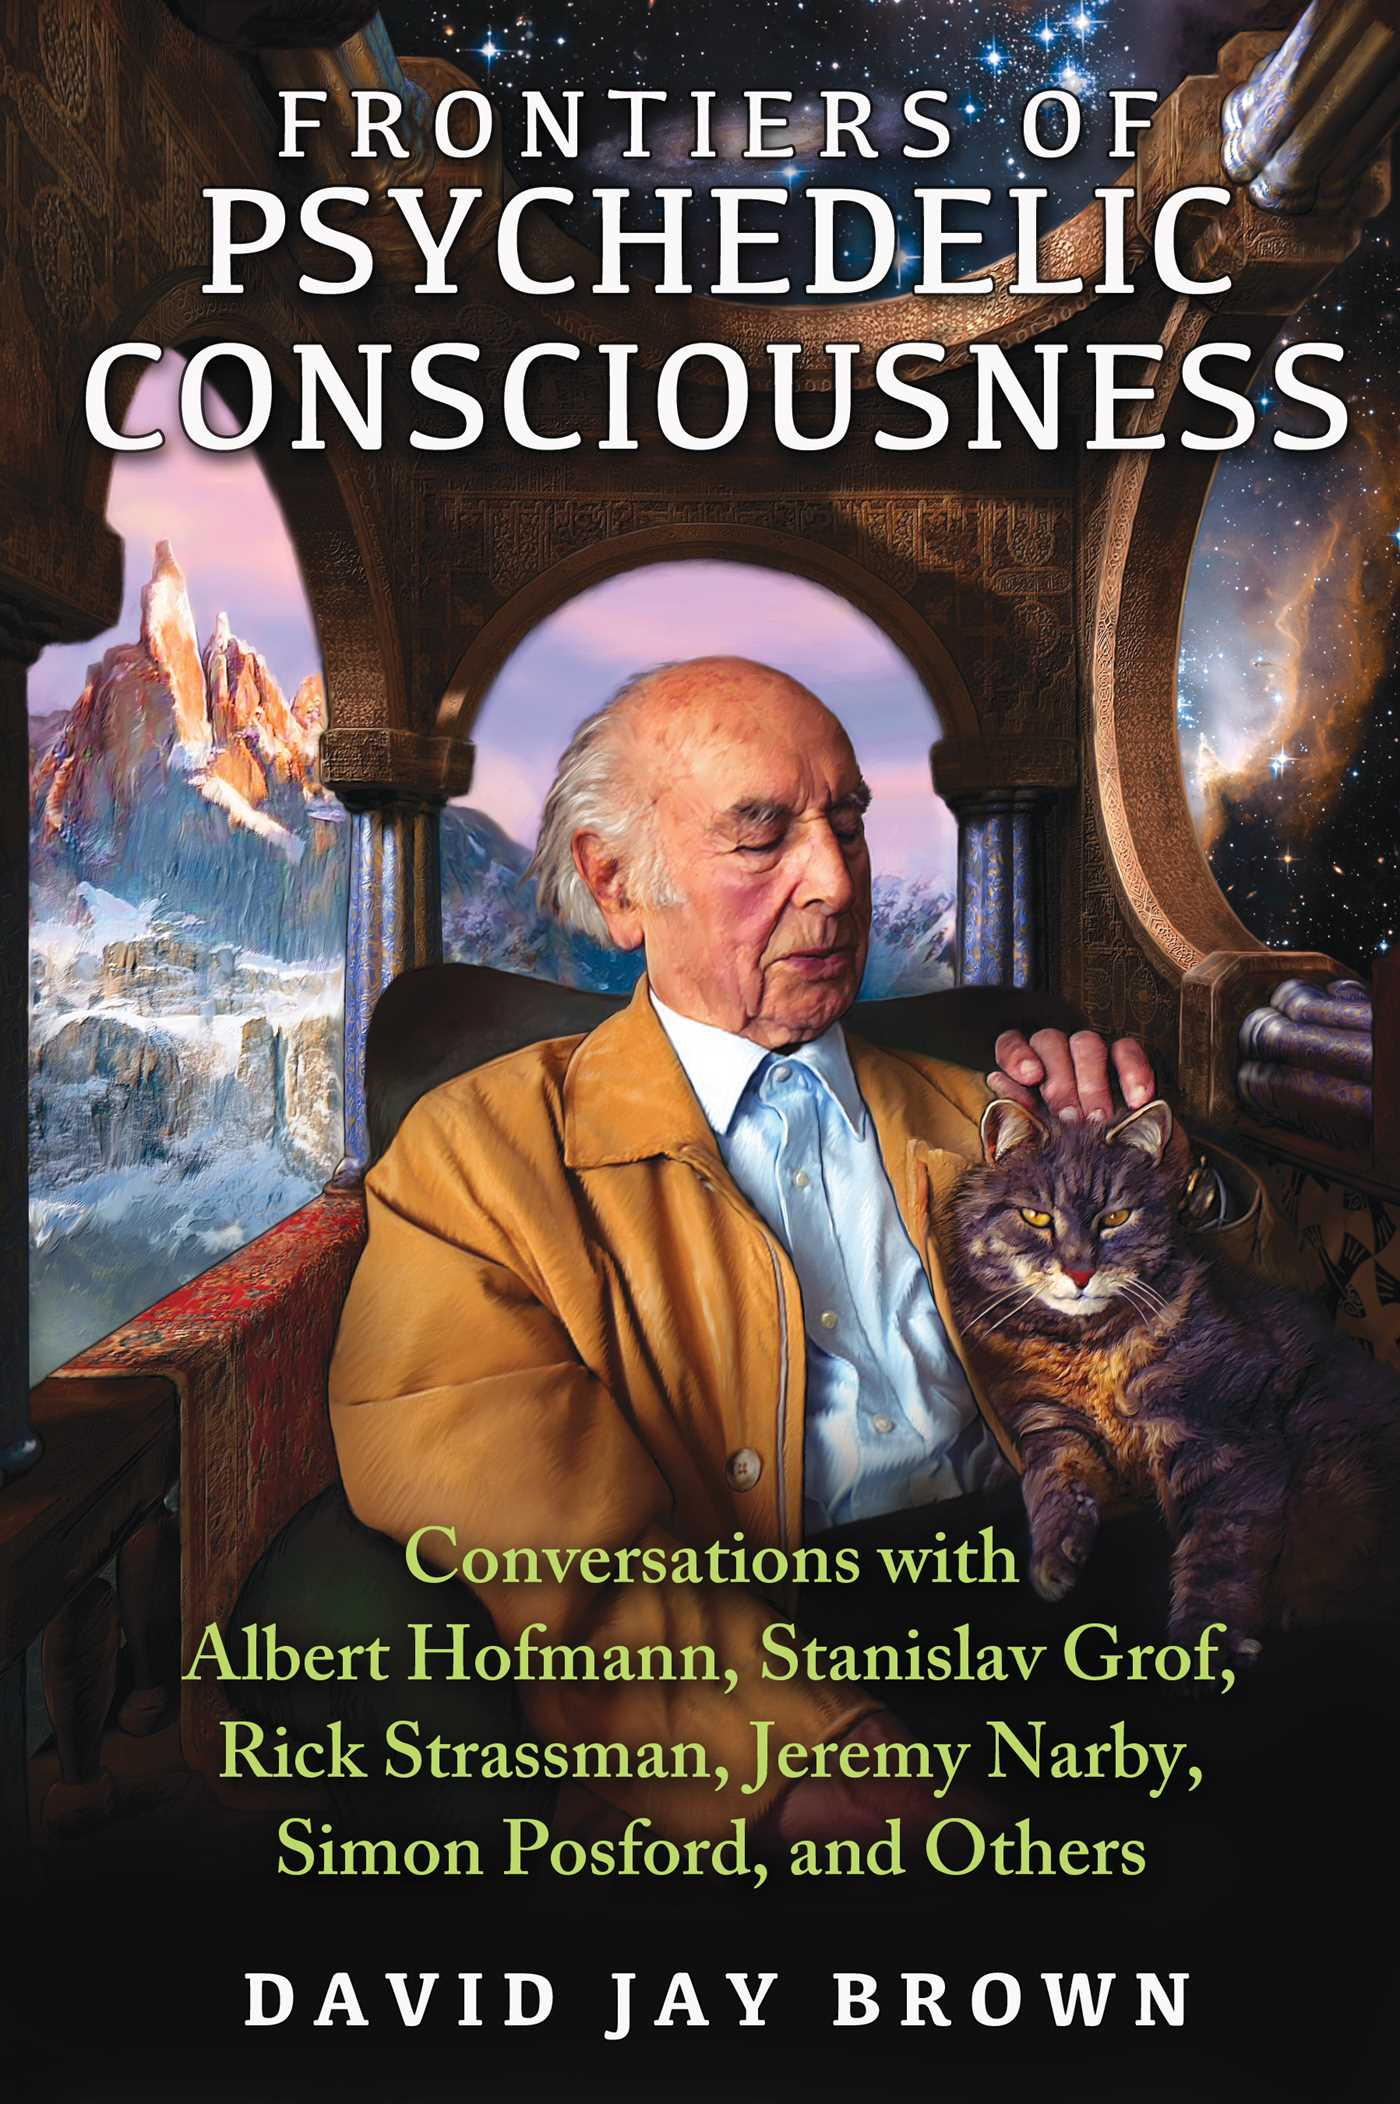 frontiers-of-psychedelic-consciousness-9781620553923_hr